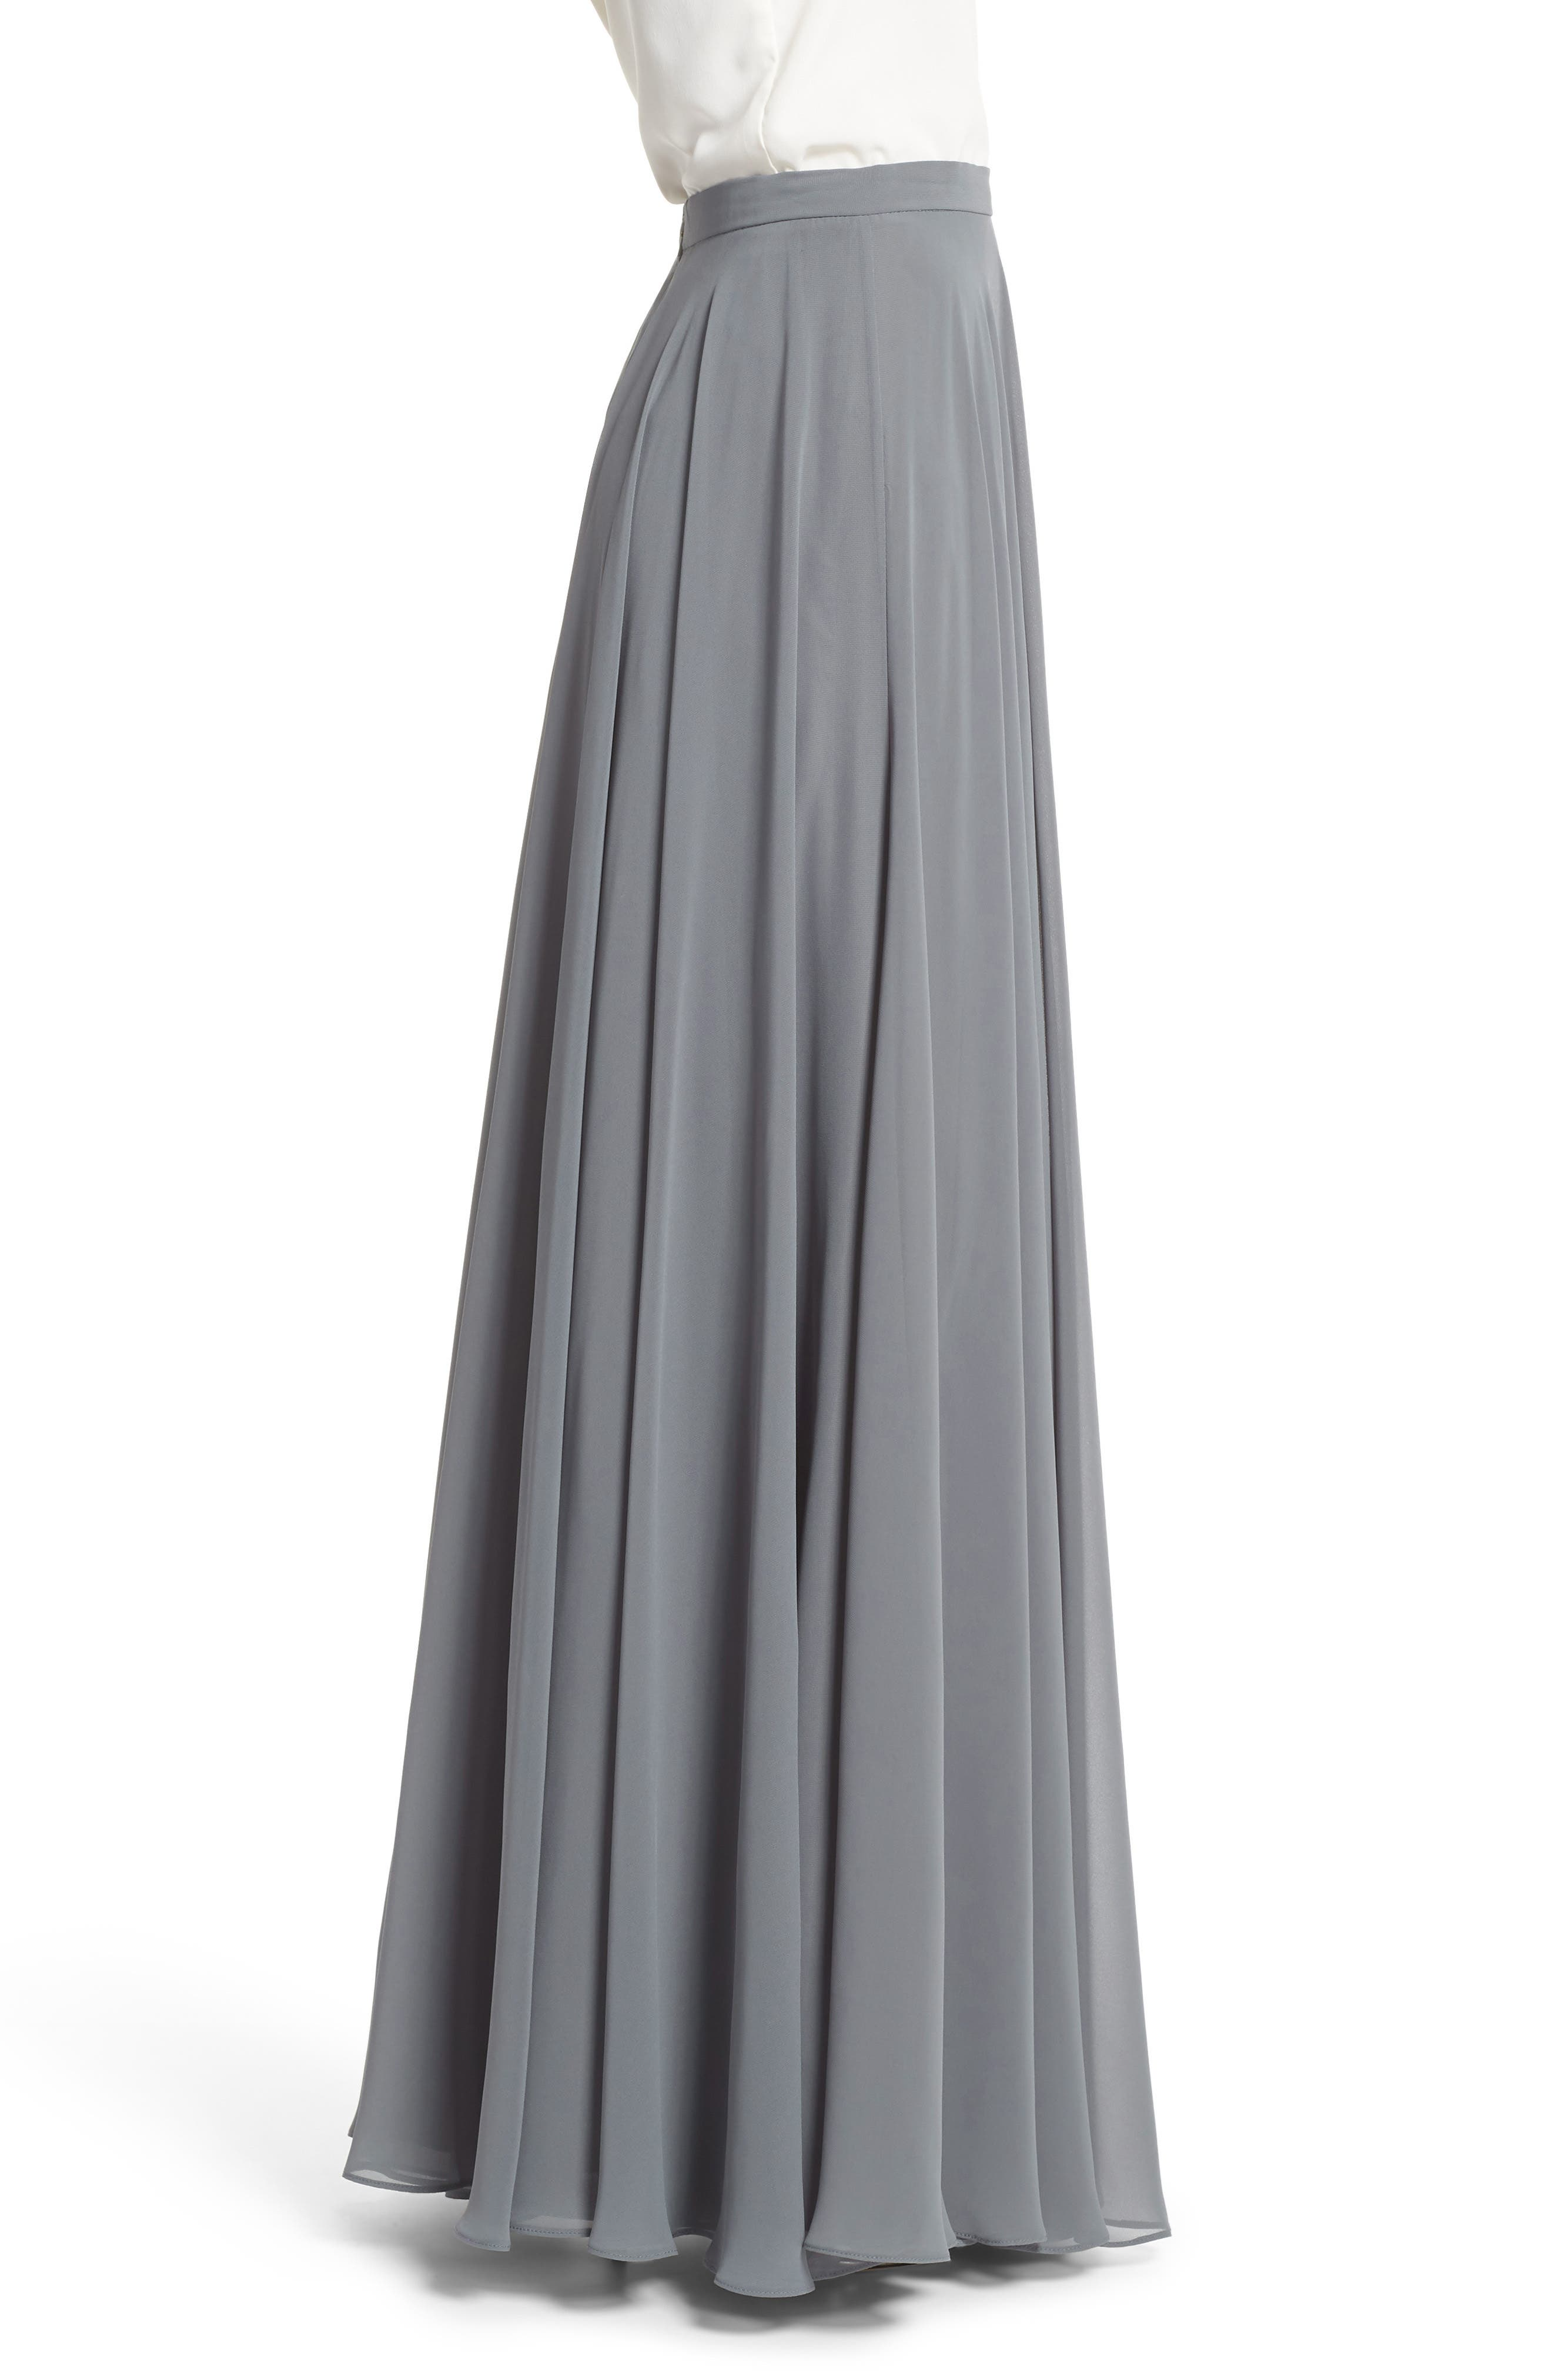 Hampton Long A-Line Chiffon Skirt,                             Alternate thumbnail 3, color,                             DENMARK BLUE